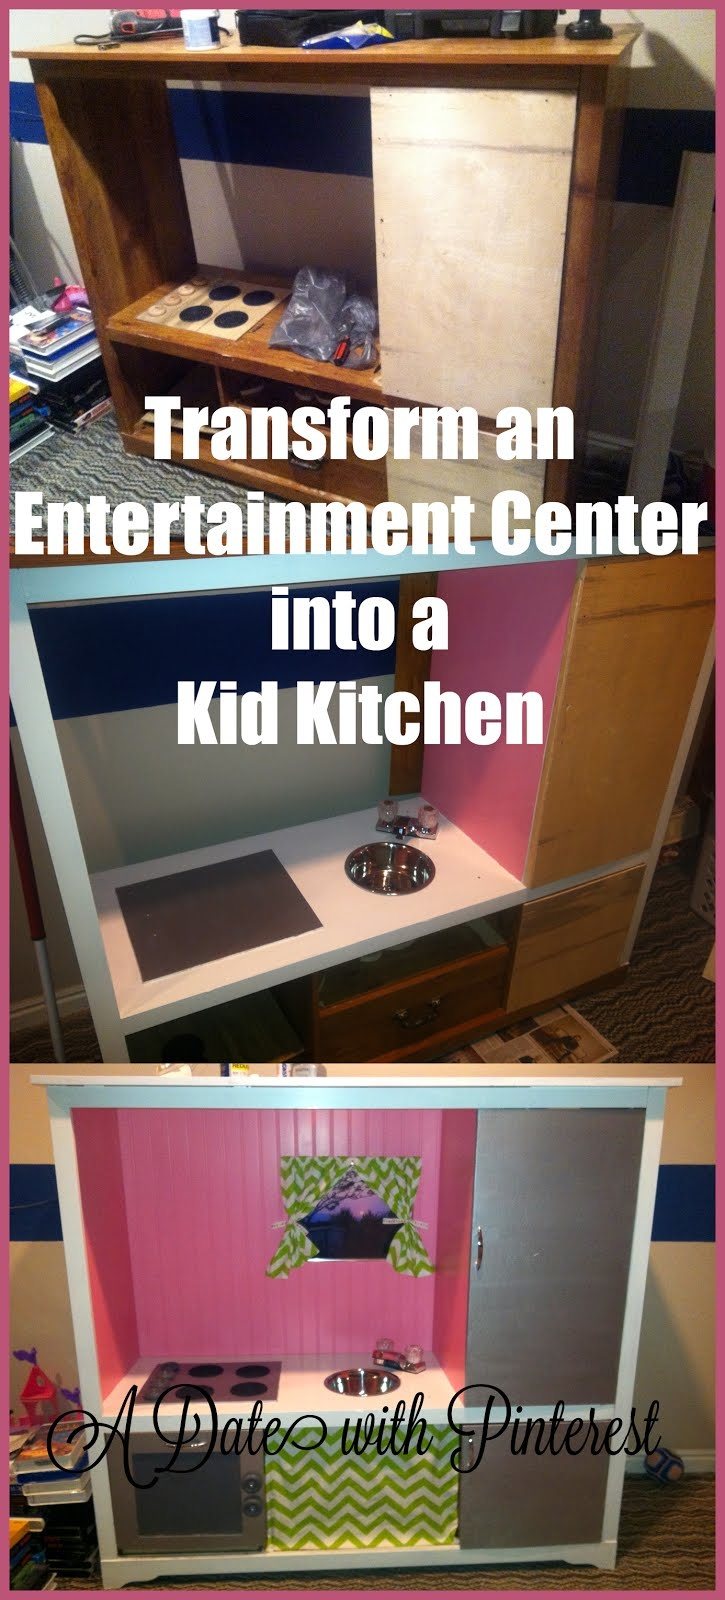 Entertainment Center Kitchen. Transform an Entertainment Center into a Kid Kitchen. Loved making this for our girls. I love that it's big enough for them both to play with it at the same time. ~A Date with Pinterest